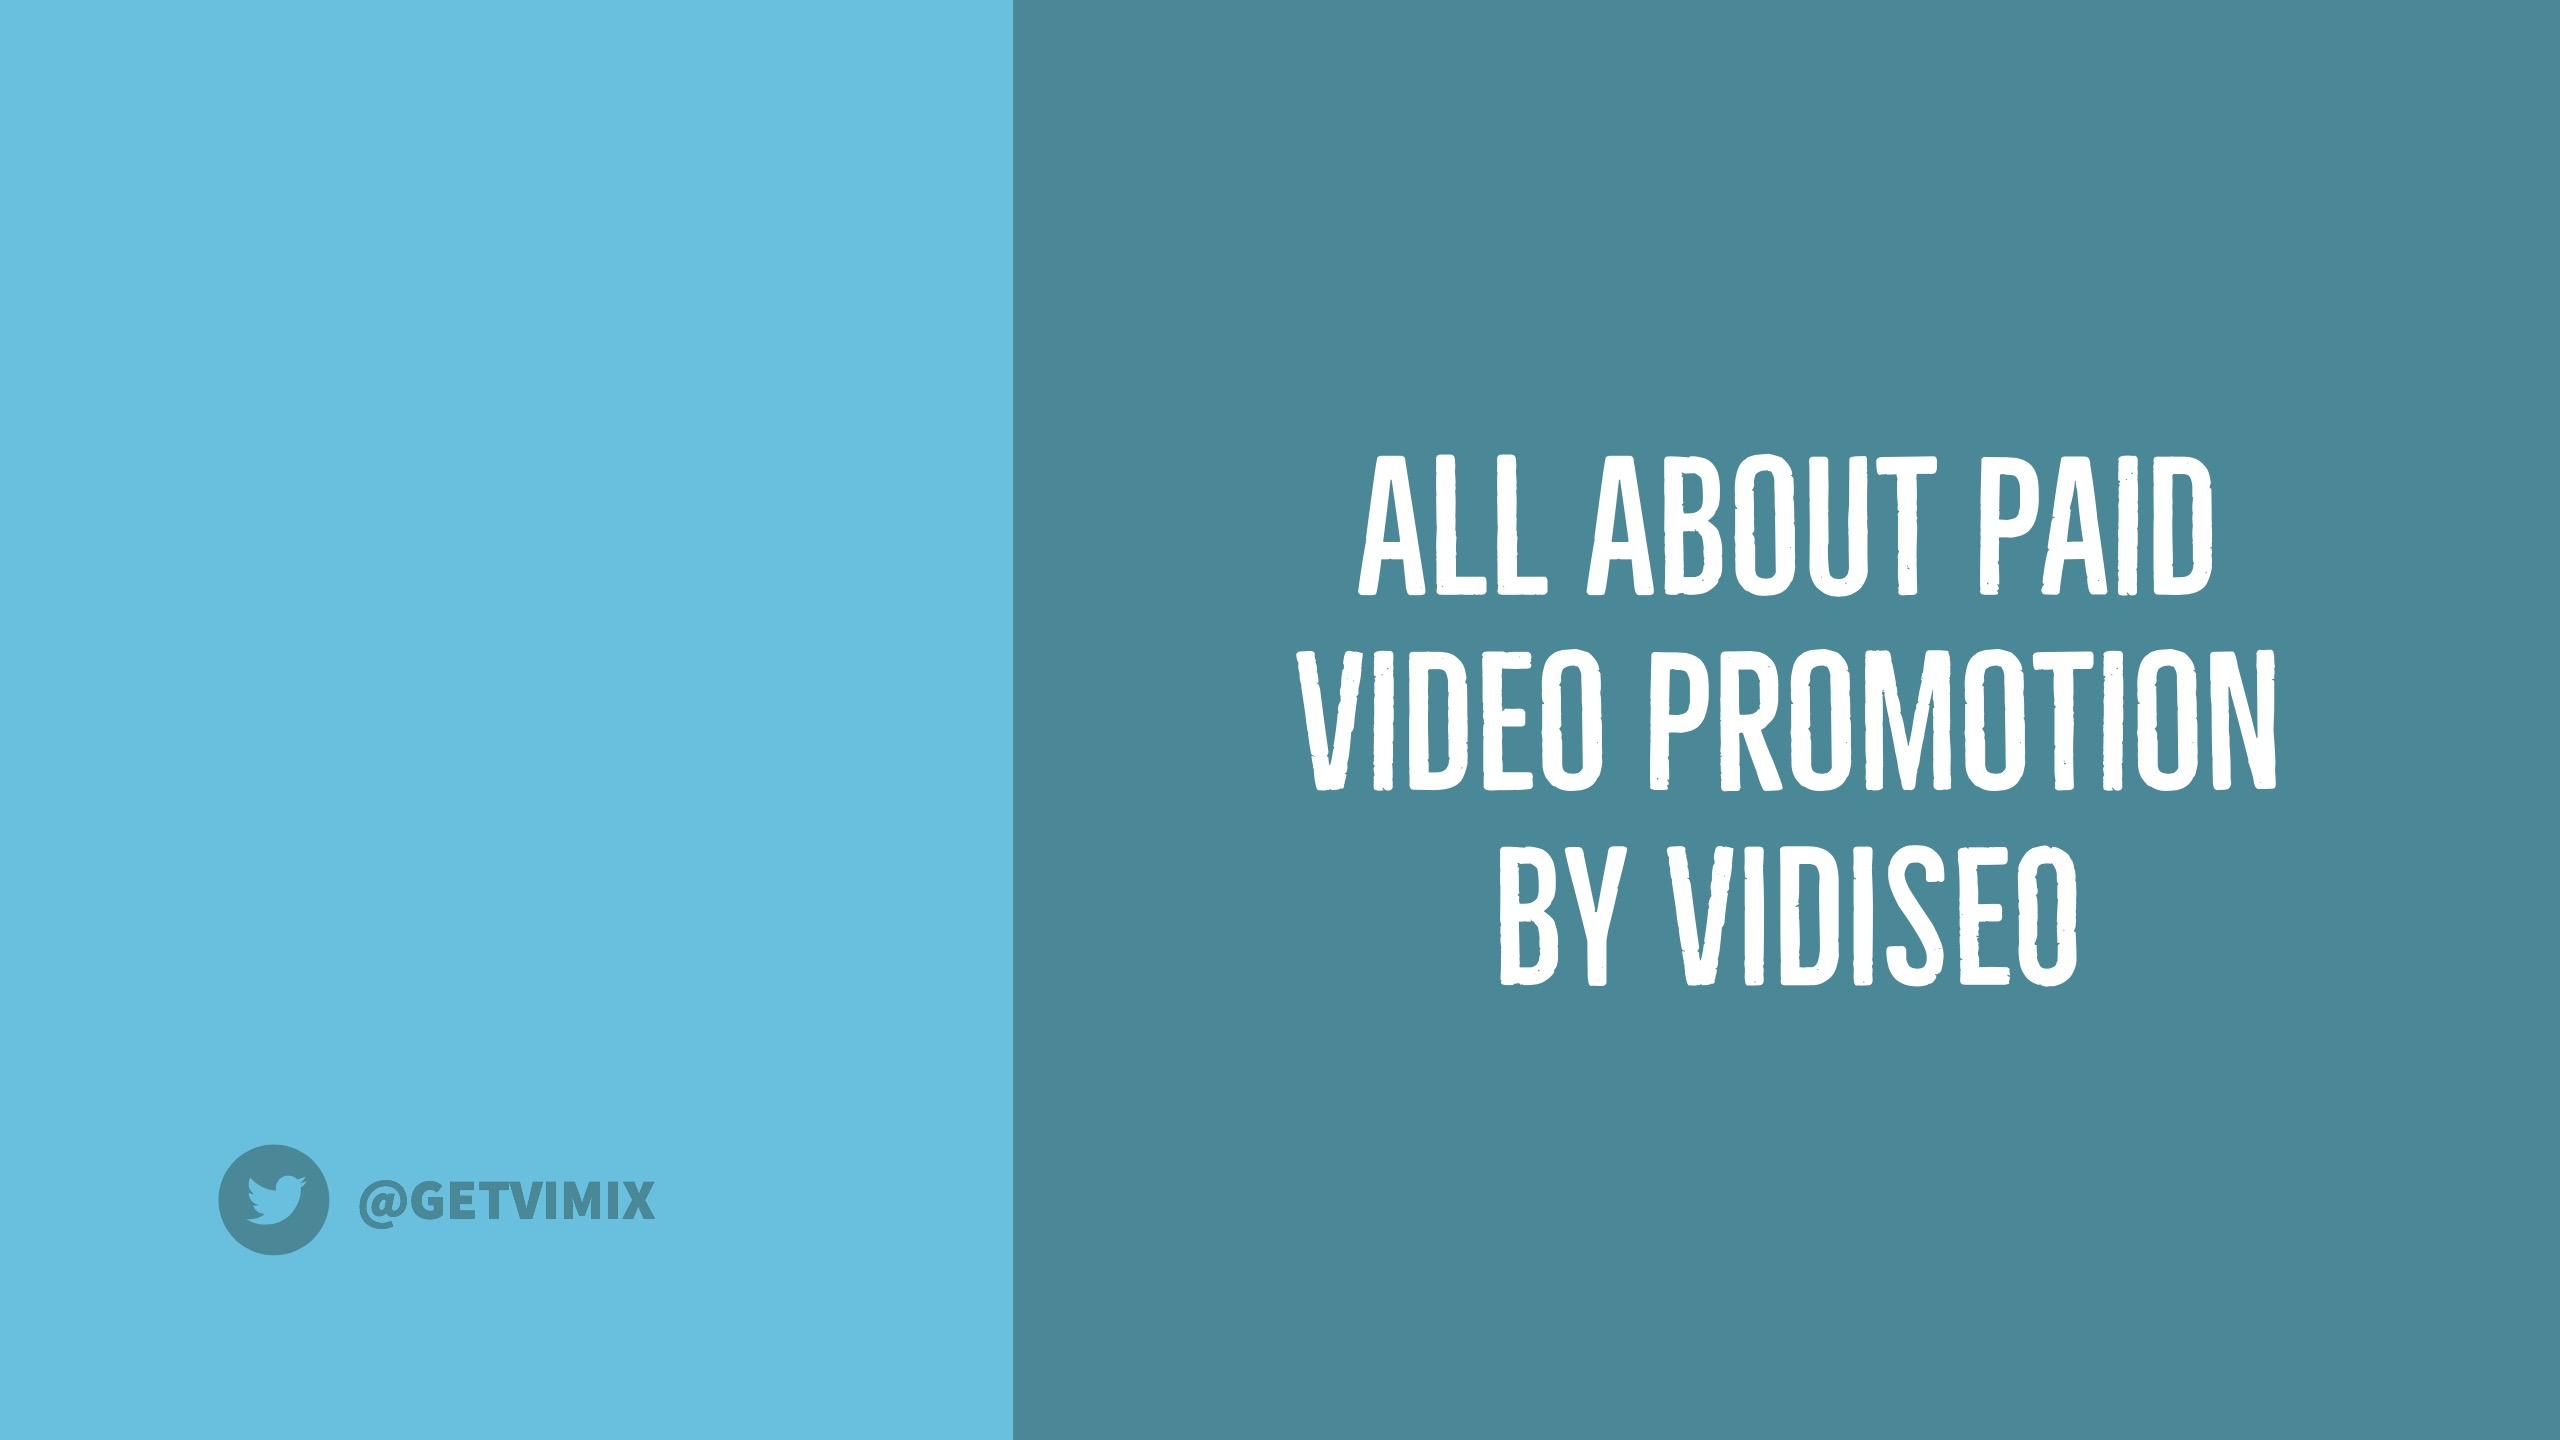 Paid Video Promotion by VIDISEO